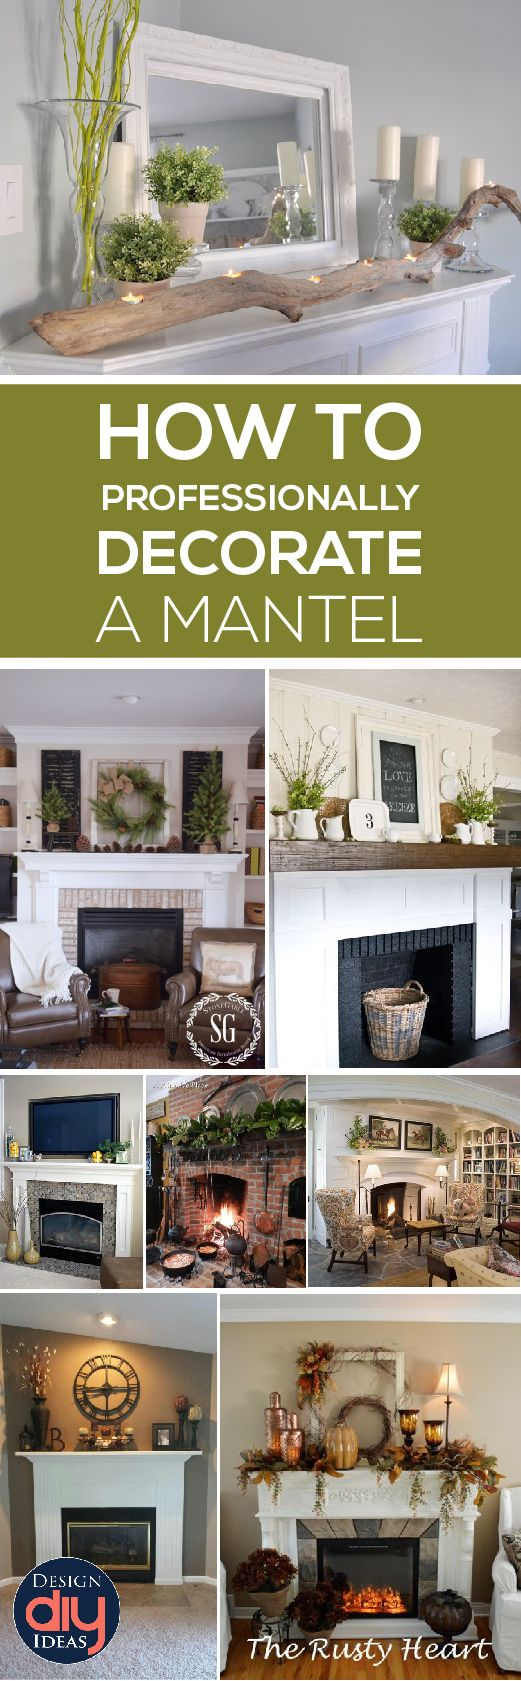 Best 25 Mantles Ideas Only On Pinterest